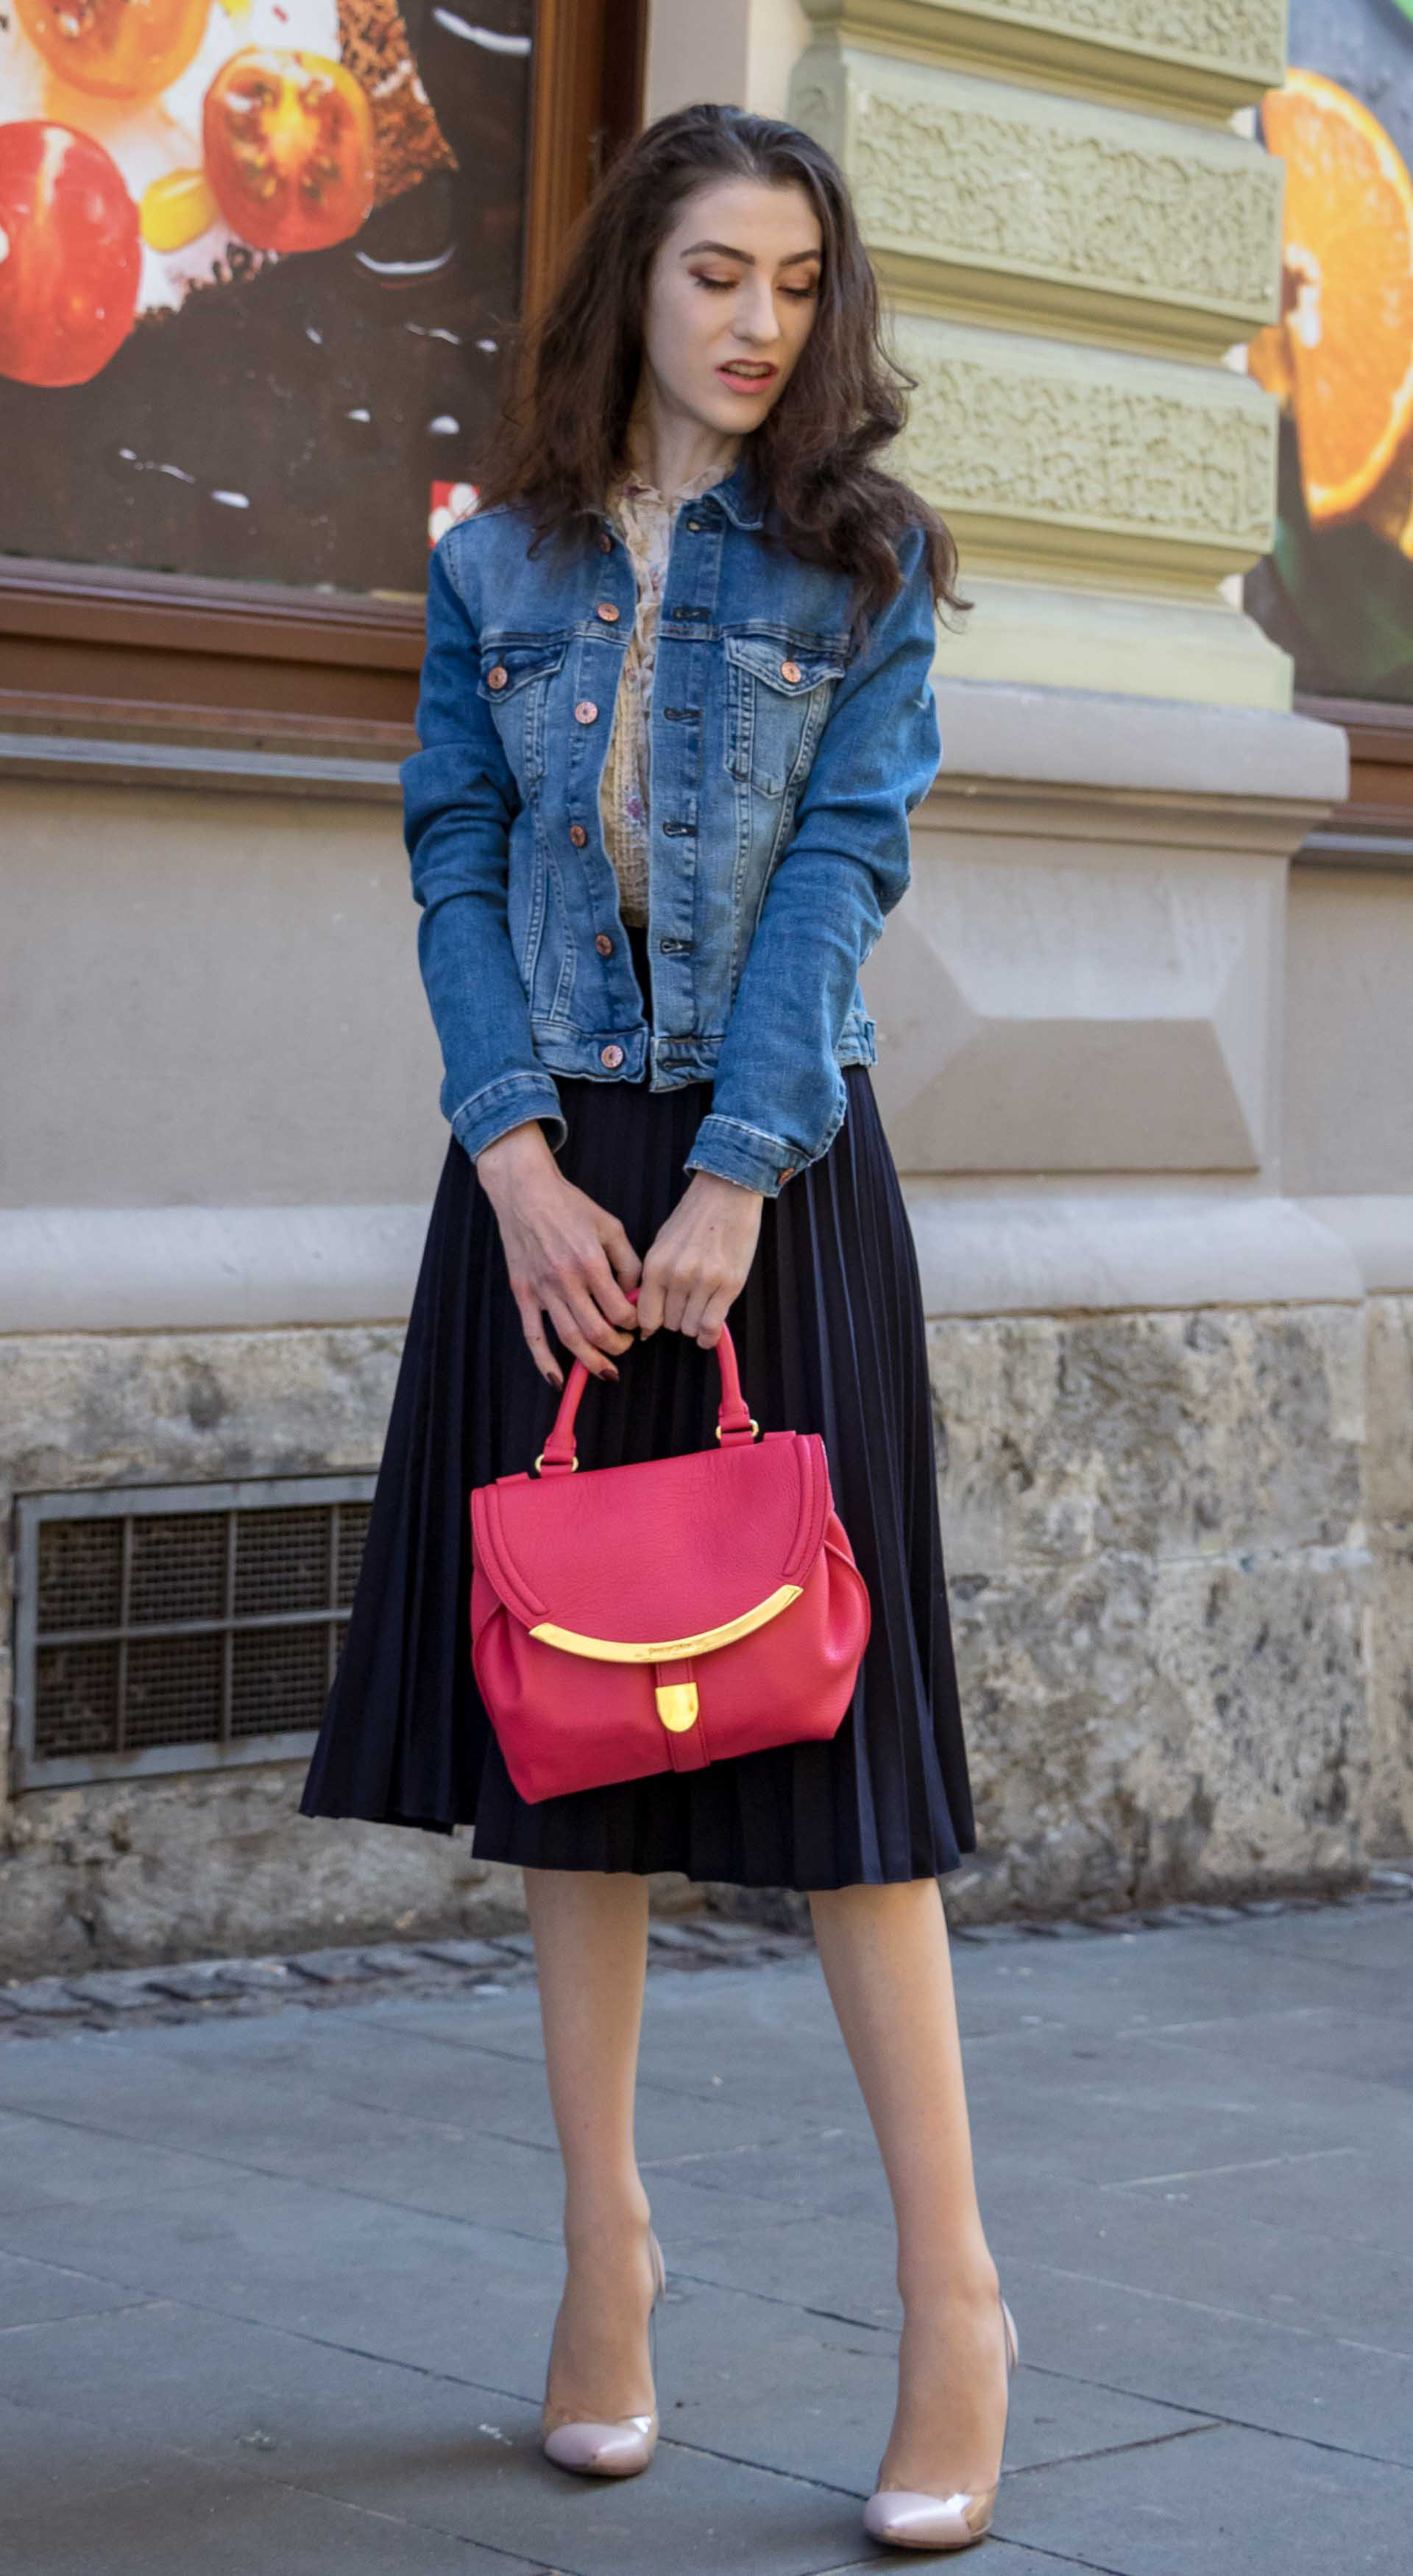 Veronika Lipar Fashion Blogger of Brunette from Wall Street wearing H&M denim jacket, floral blouse, midi pleated skirt, Gianvito Rossi plexi pumps, pink top handle bag on cold summer morning before going to brunch with friends